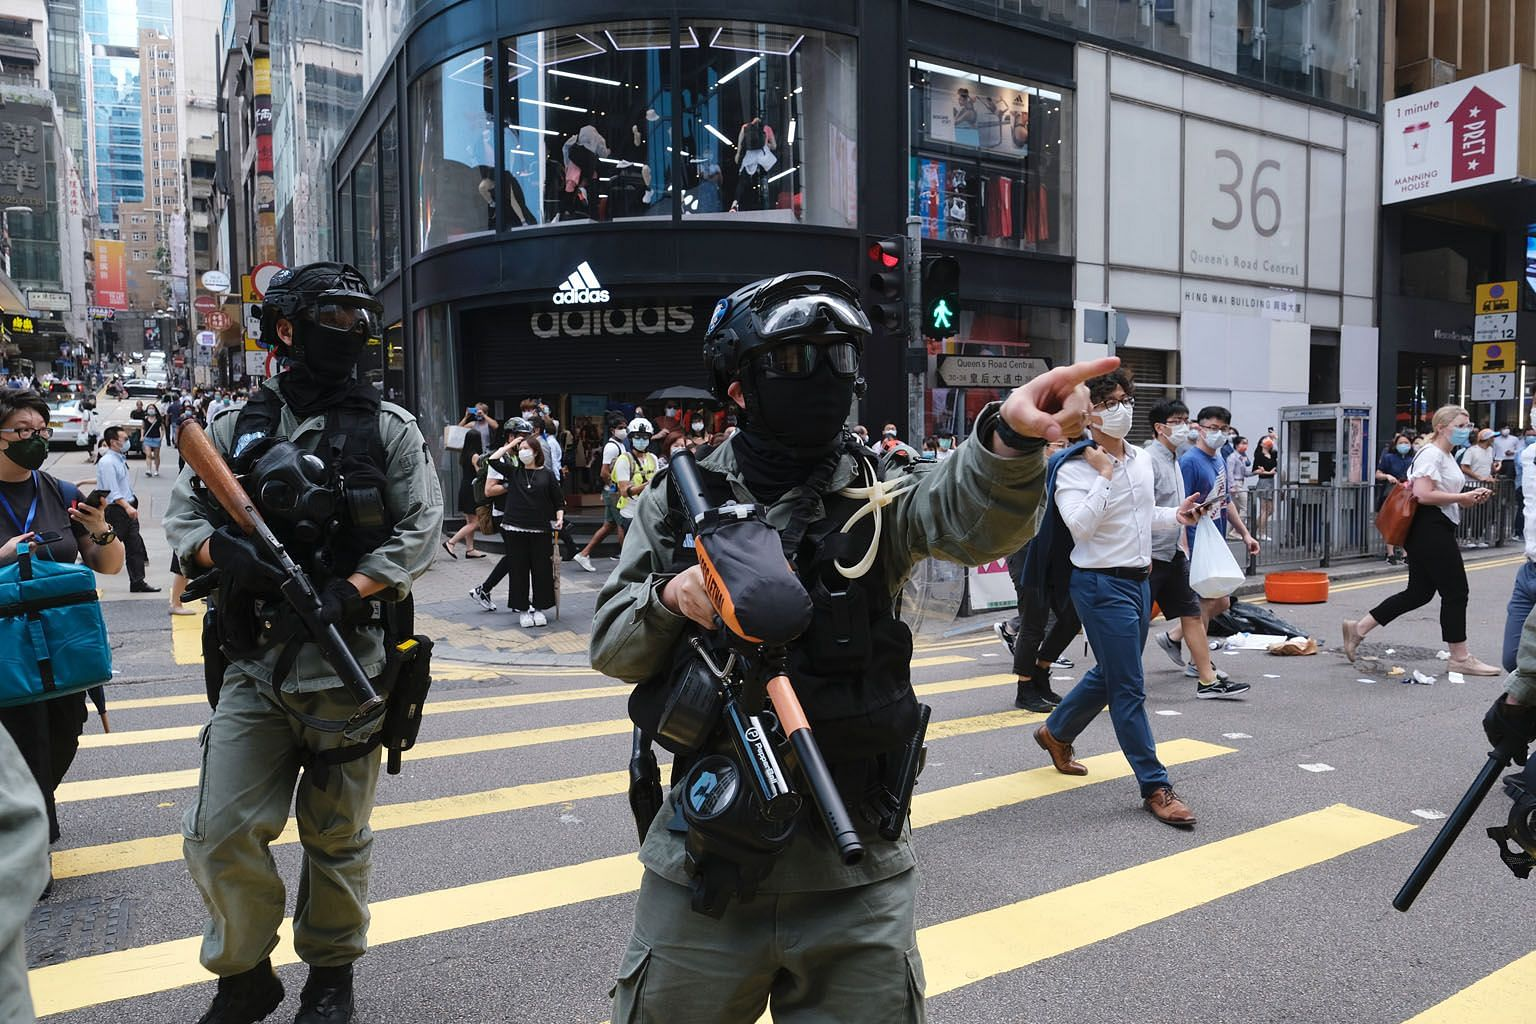 Riot police armed with pepper ball rifles in the Central district during a protest in Hong Kong on Wednesday. Officers fired pepper spray projectiles as protesters hit the streets to oppose China's increasing control over the city - a return to the s